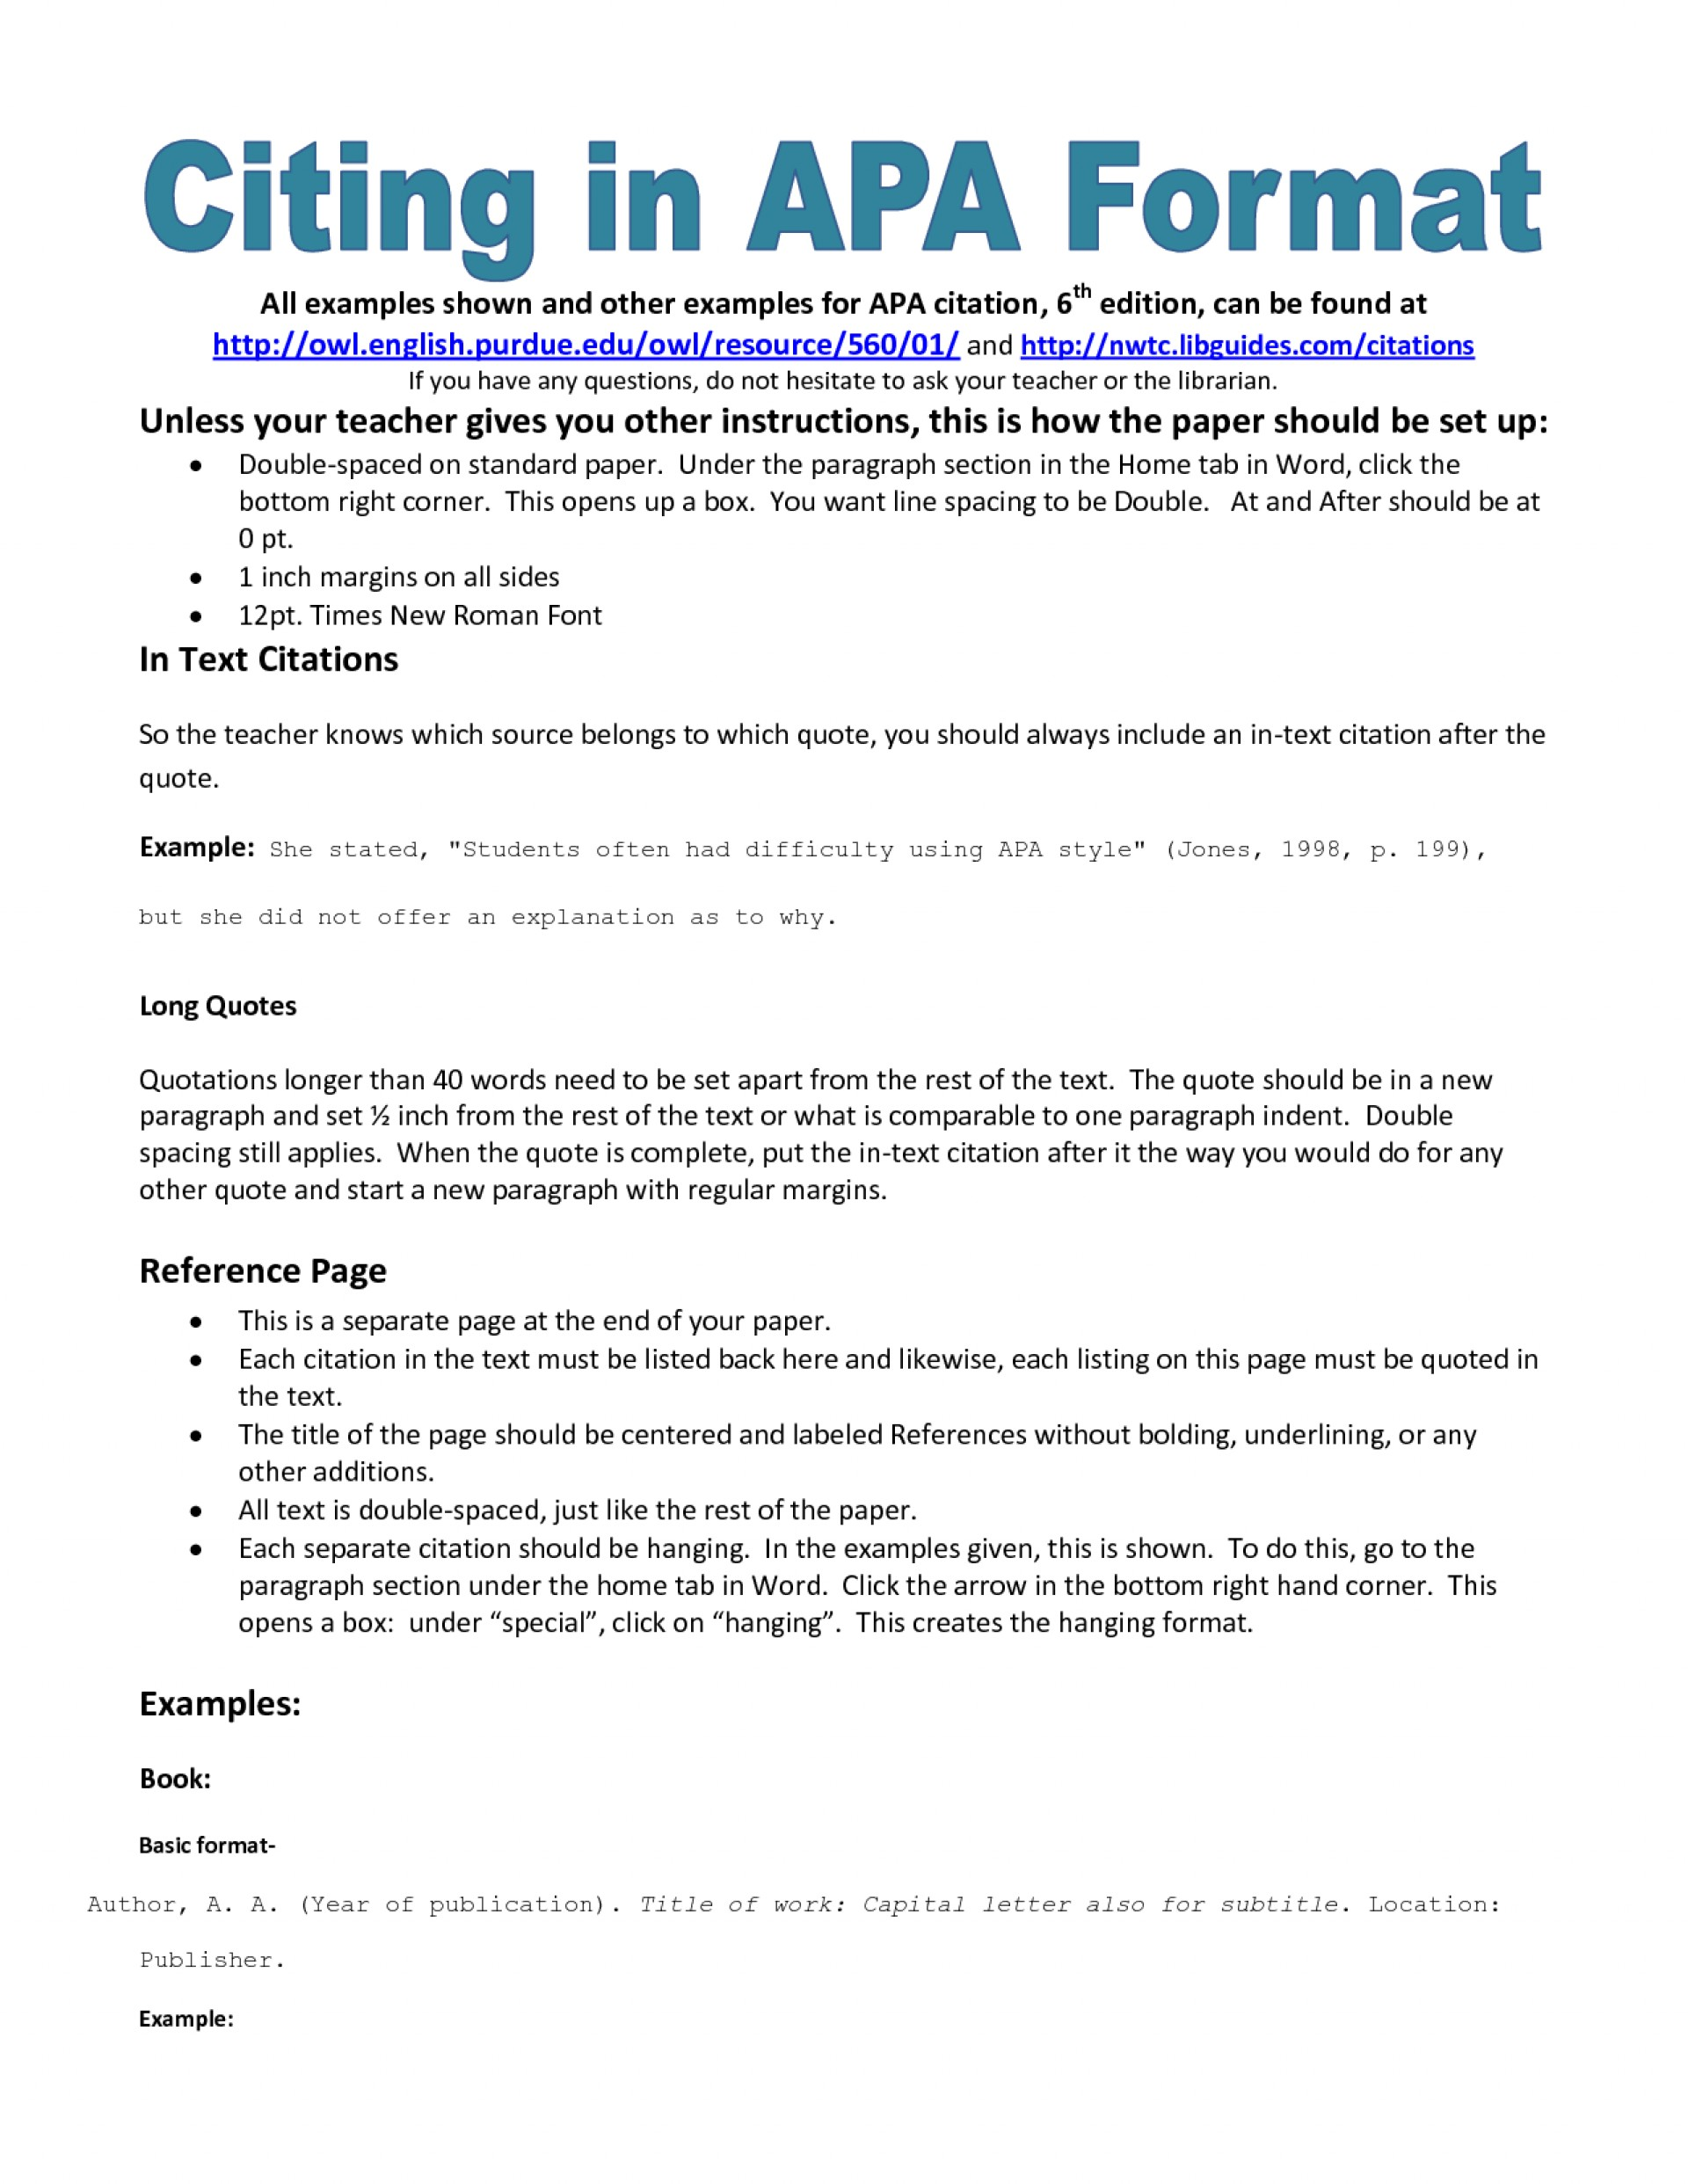 006 Apa Essay Format Breathtaking Research Paper Word Reference Page Template 1920